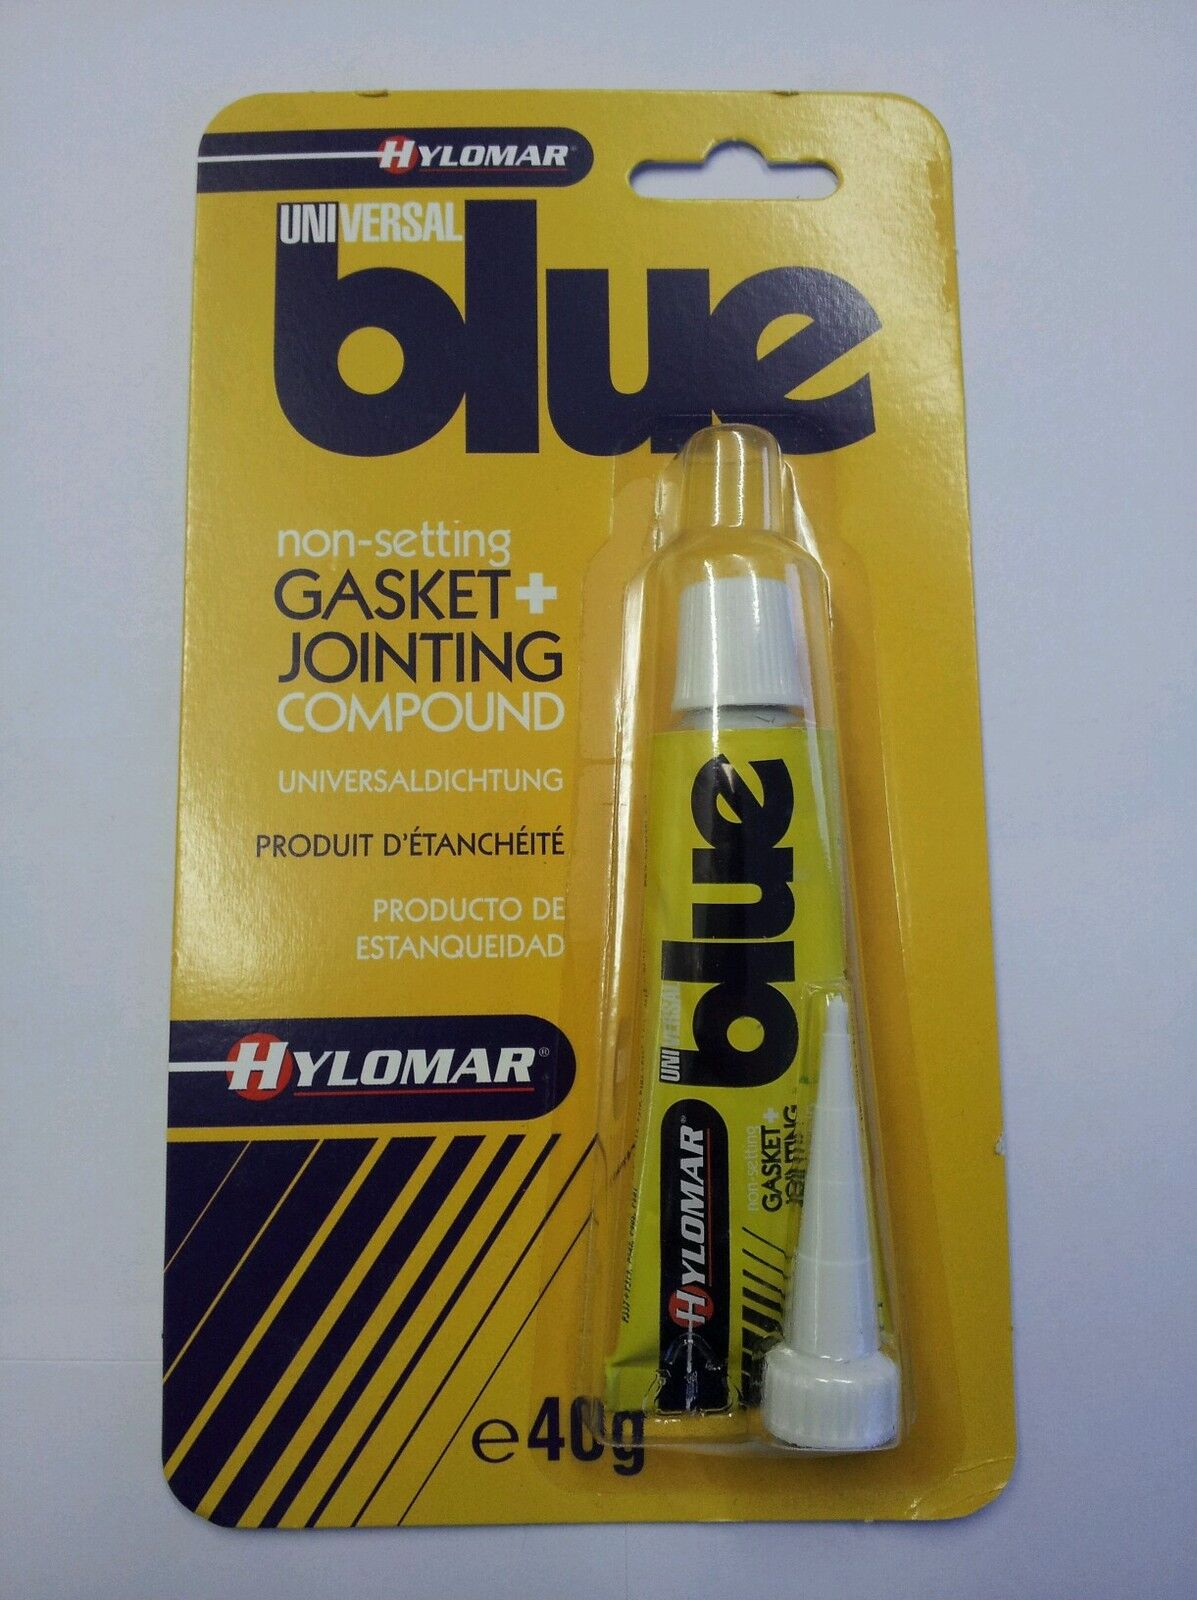 Car Parts - Hylomar Universal Blue non-setting Gasket Jointing Compound 40g